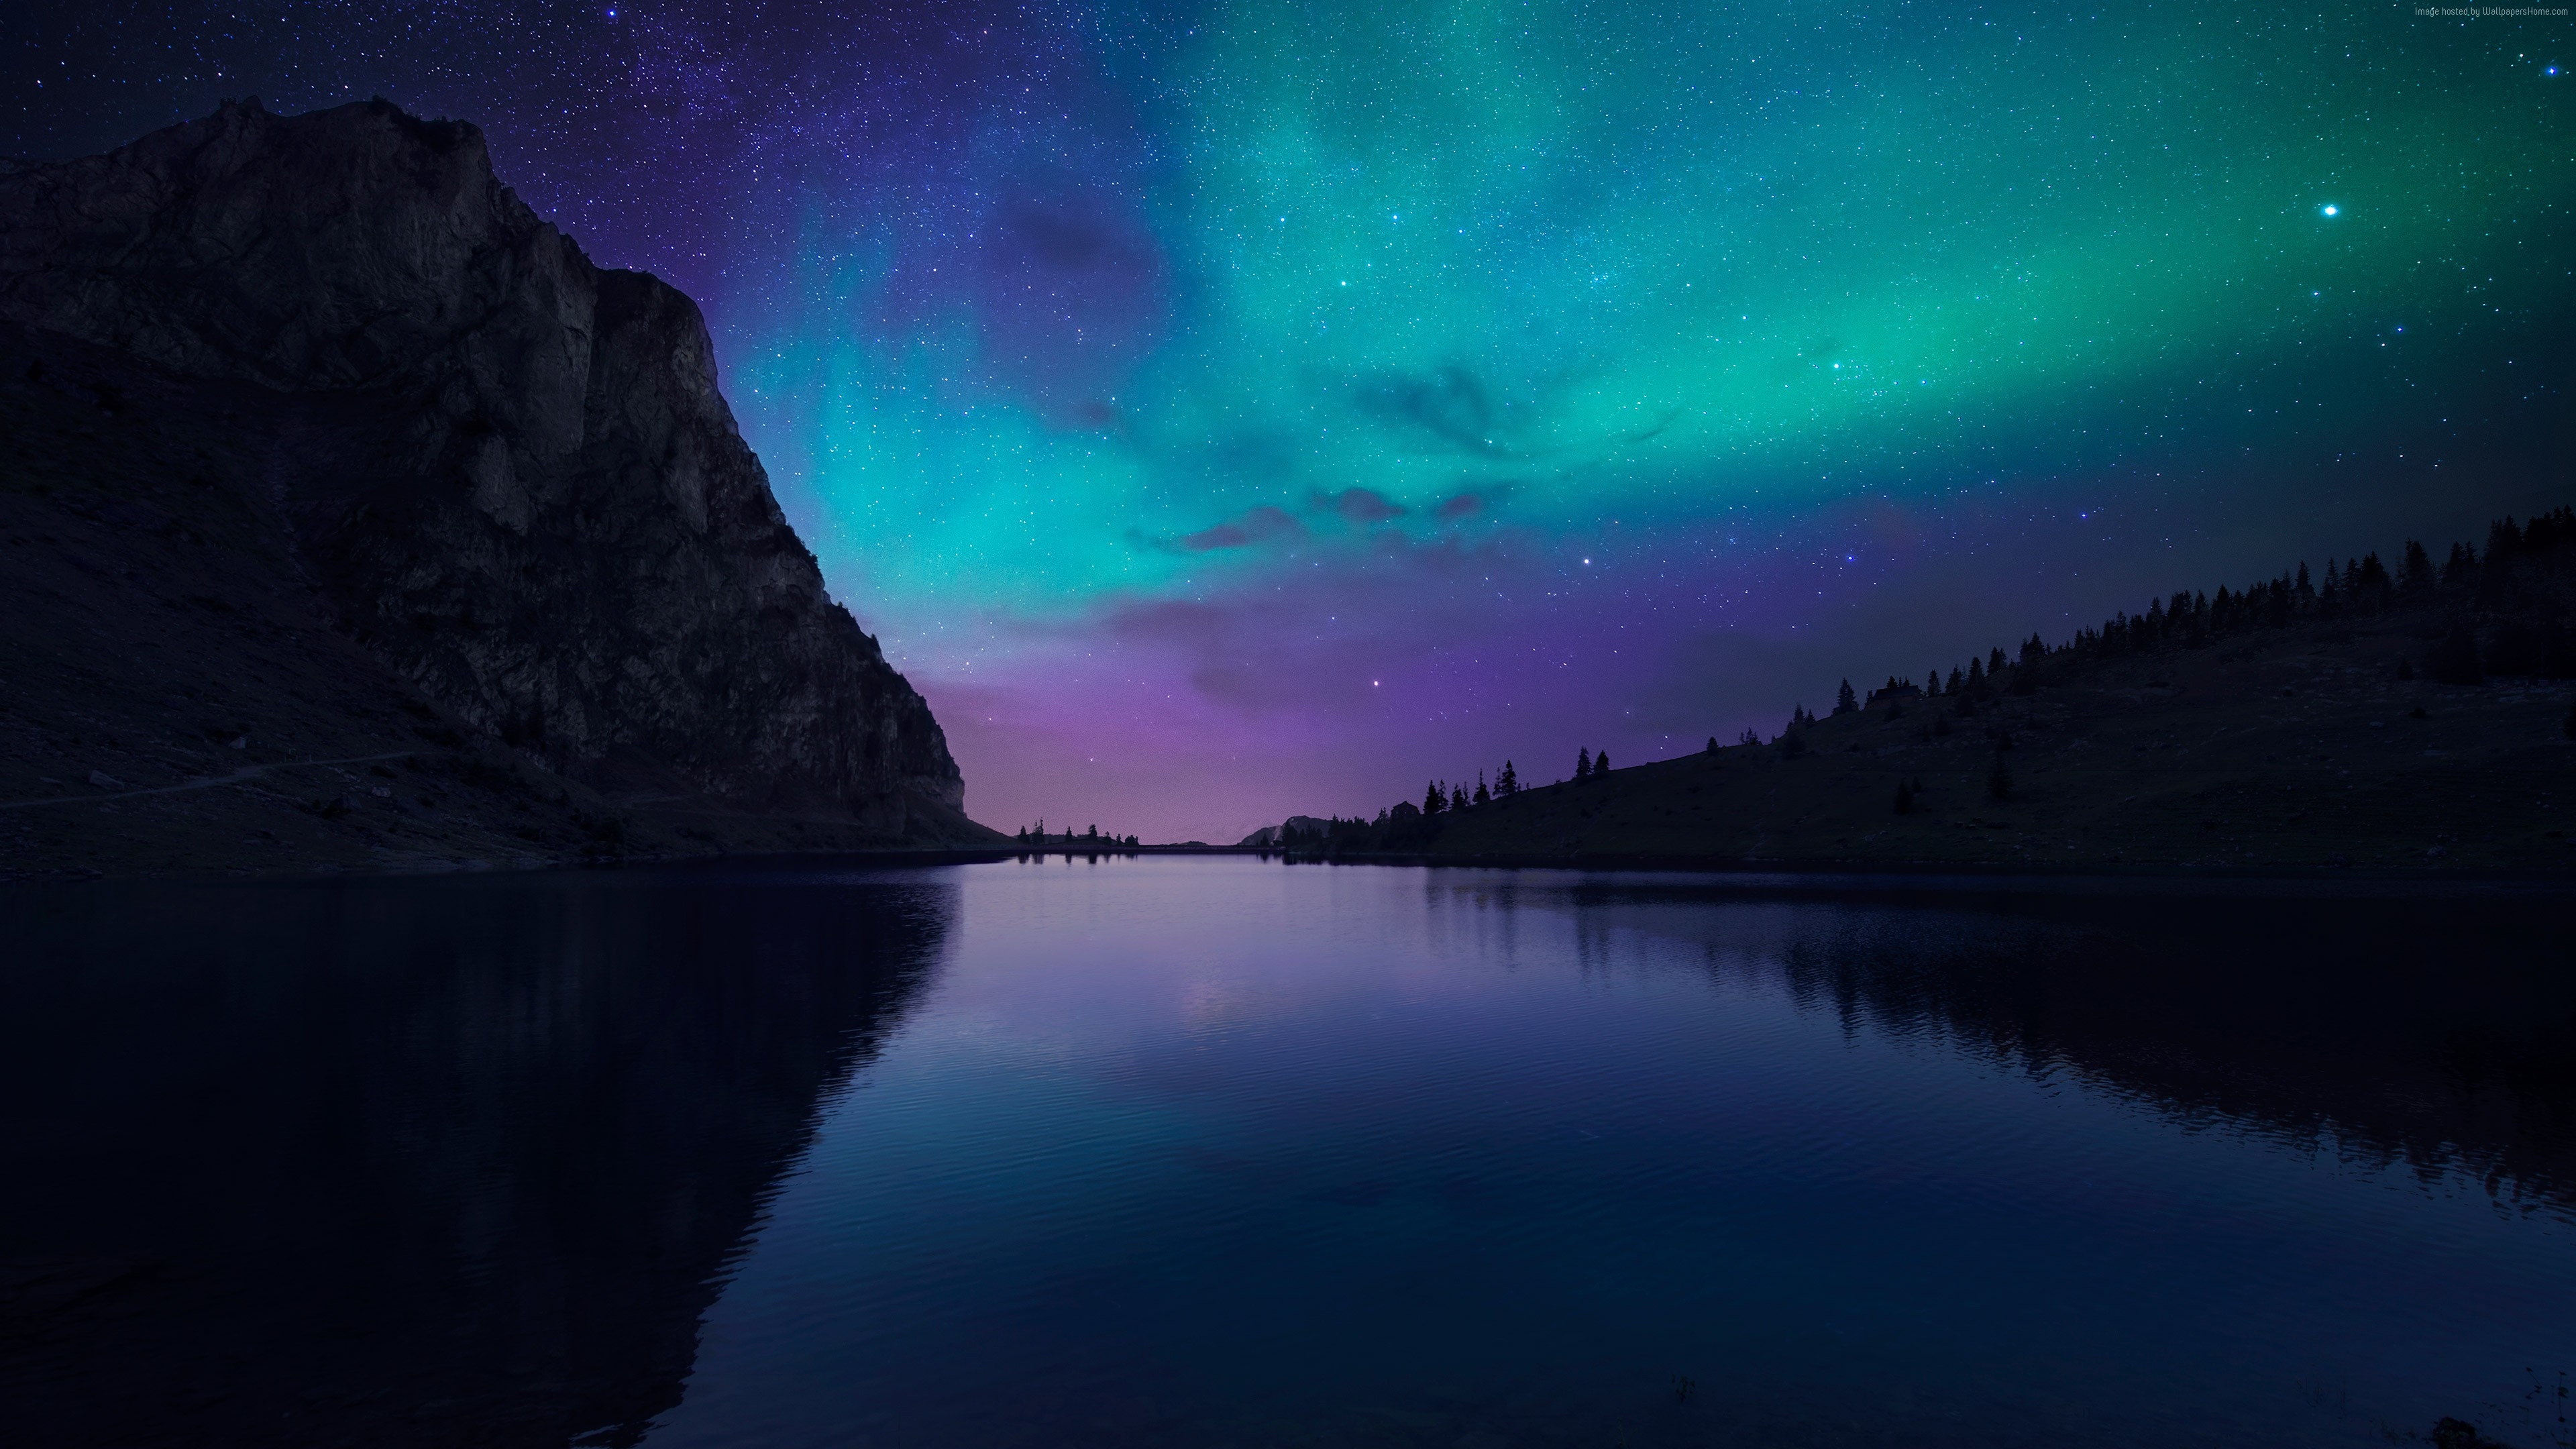 Lake Aurora 4K Wallpaper and Desktop Images